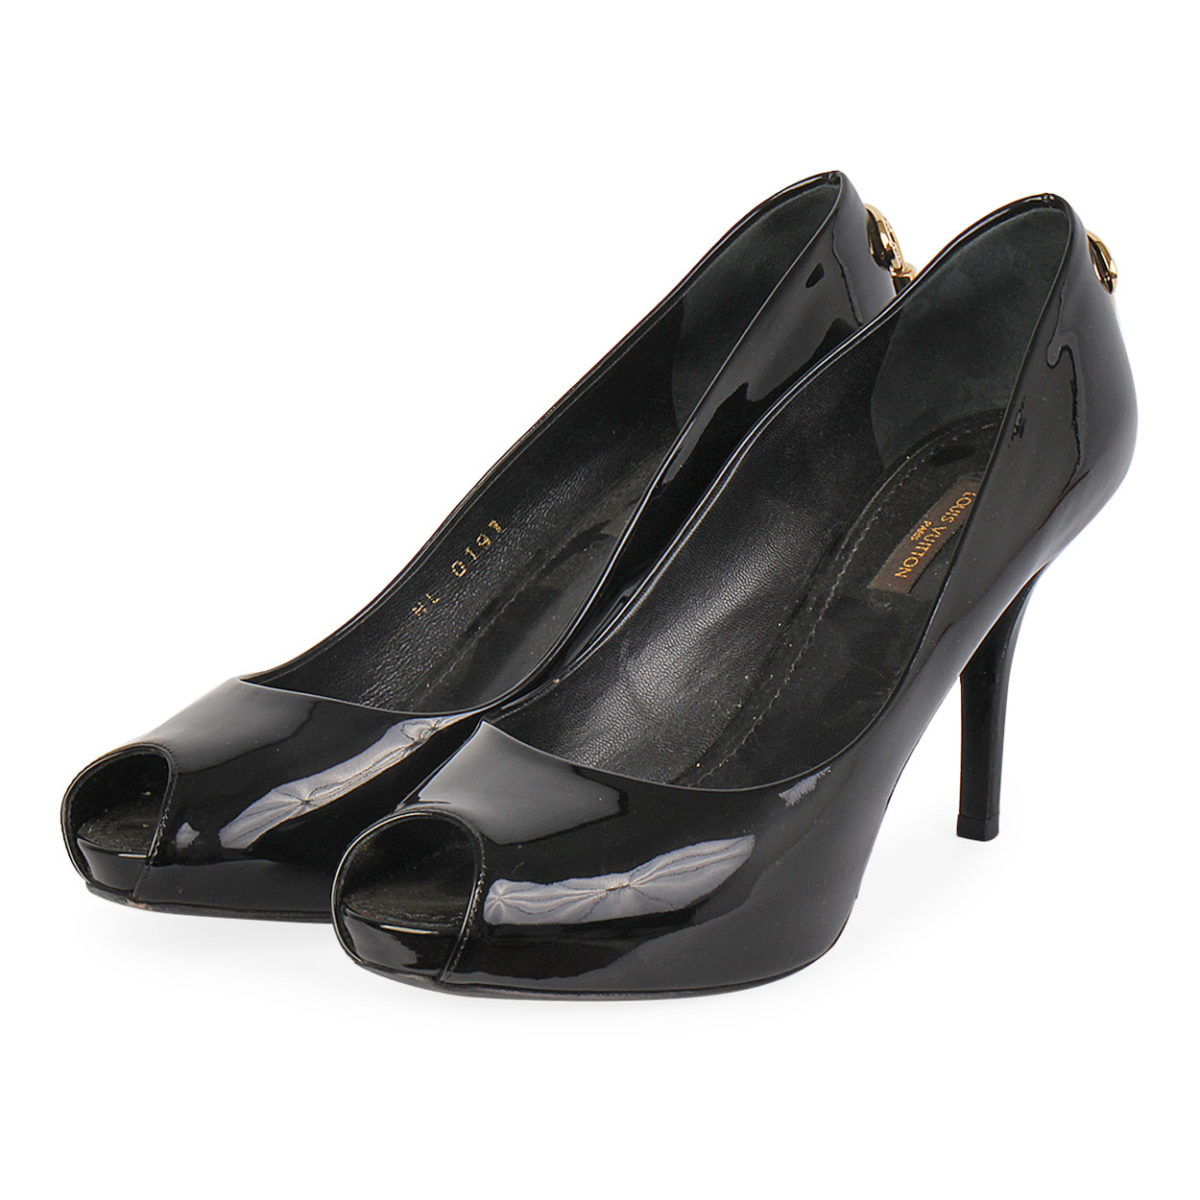 9bdd689c69d5 LOUIS VUITTON Patent Leather Oh-Really Peep Toe Pumps Black - S  38 ...